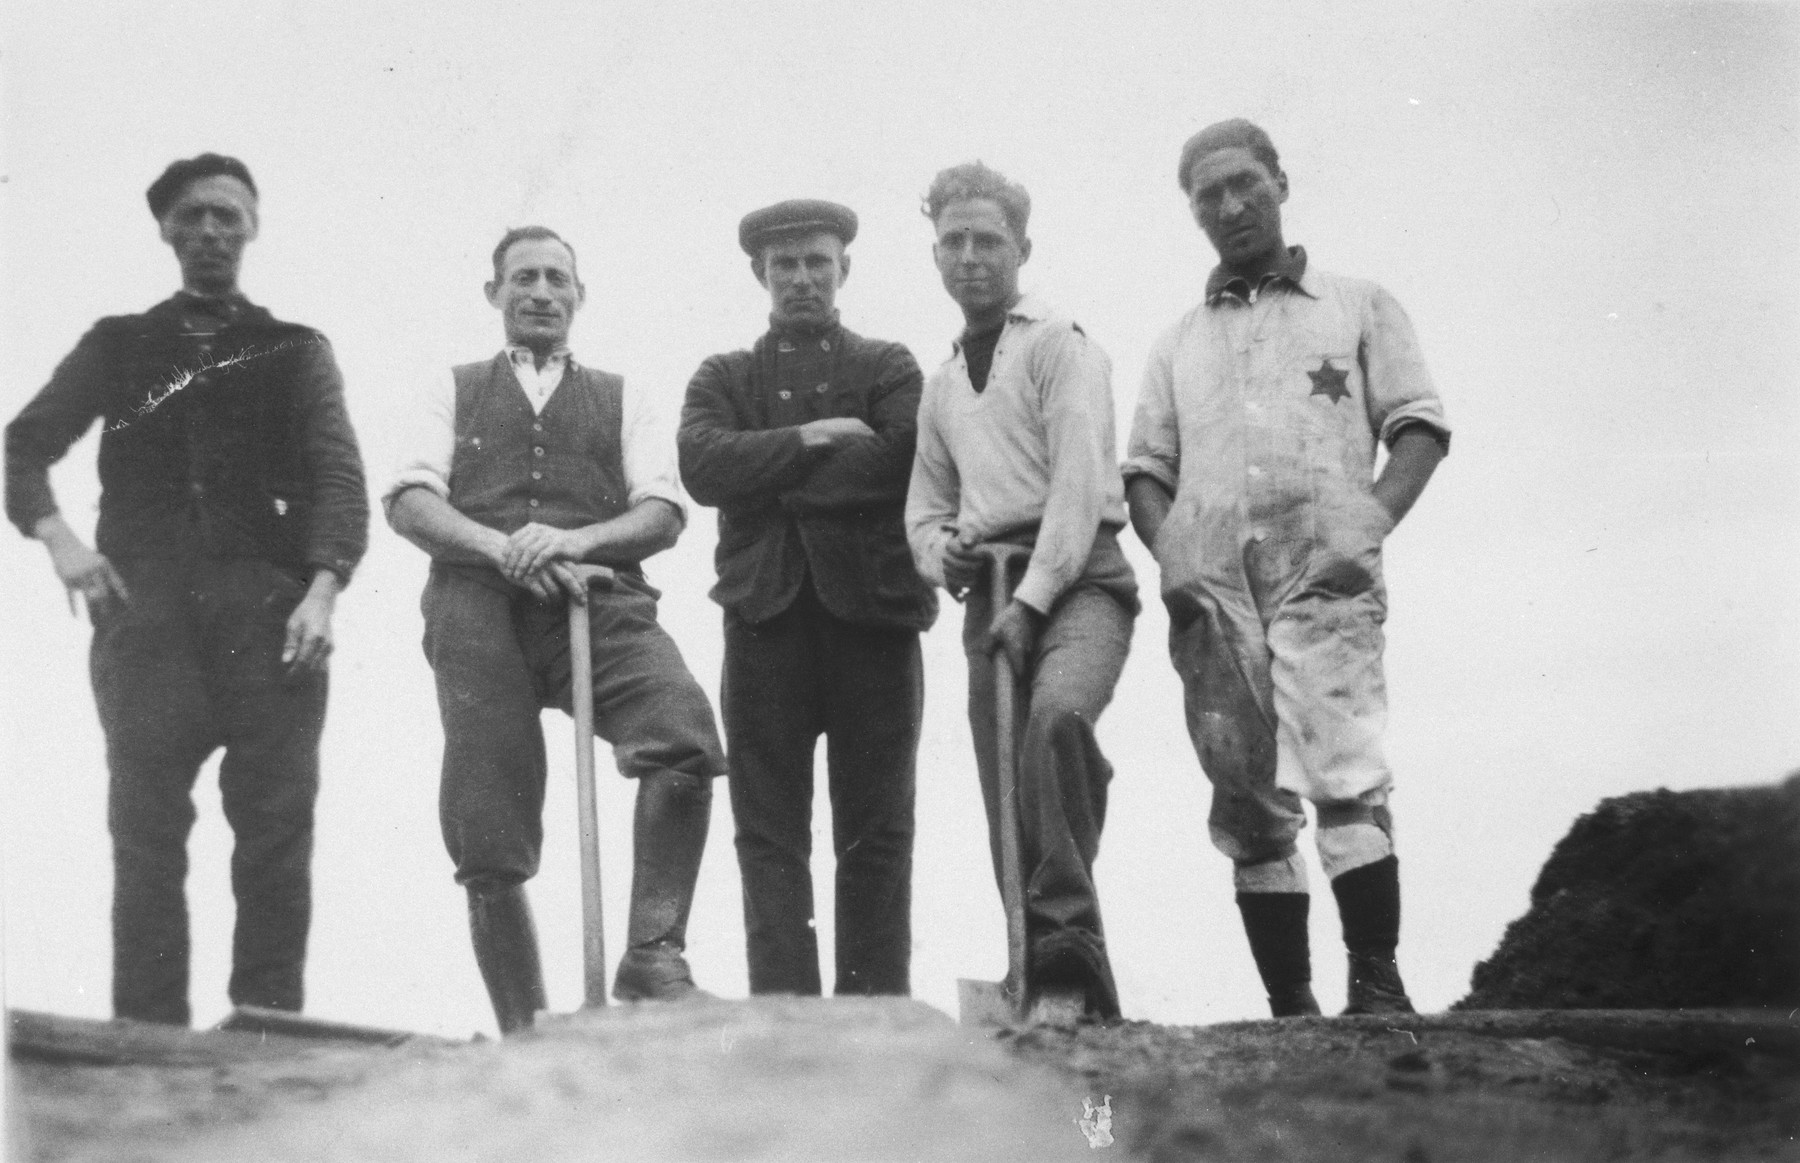 Group portrait of two Dutch Jews and three paid Dutch workers in the Staphorst-Rouveen labor camp.  Coenraad Rood, the donor, is standing first from right and Moses Cohen is second from left.